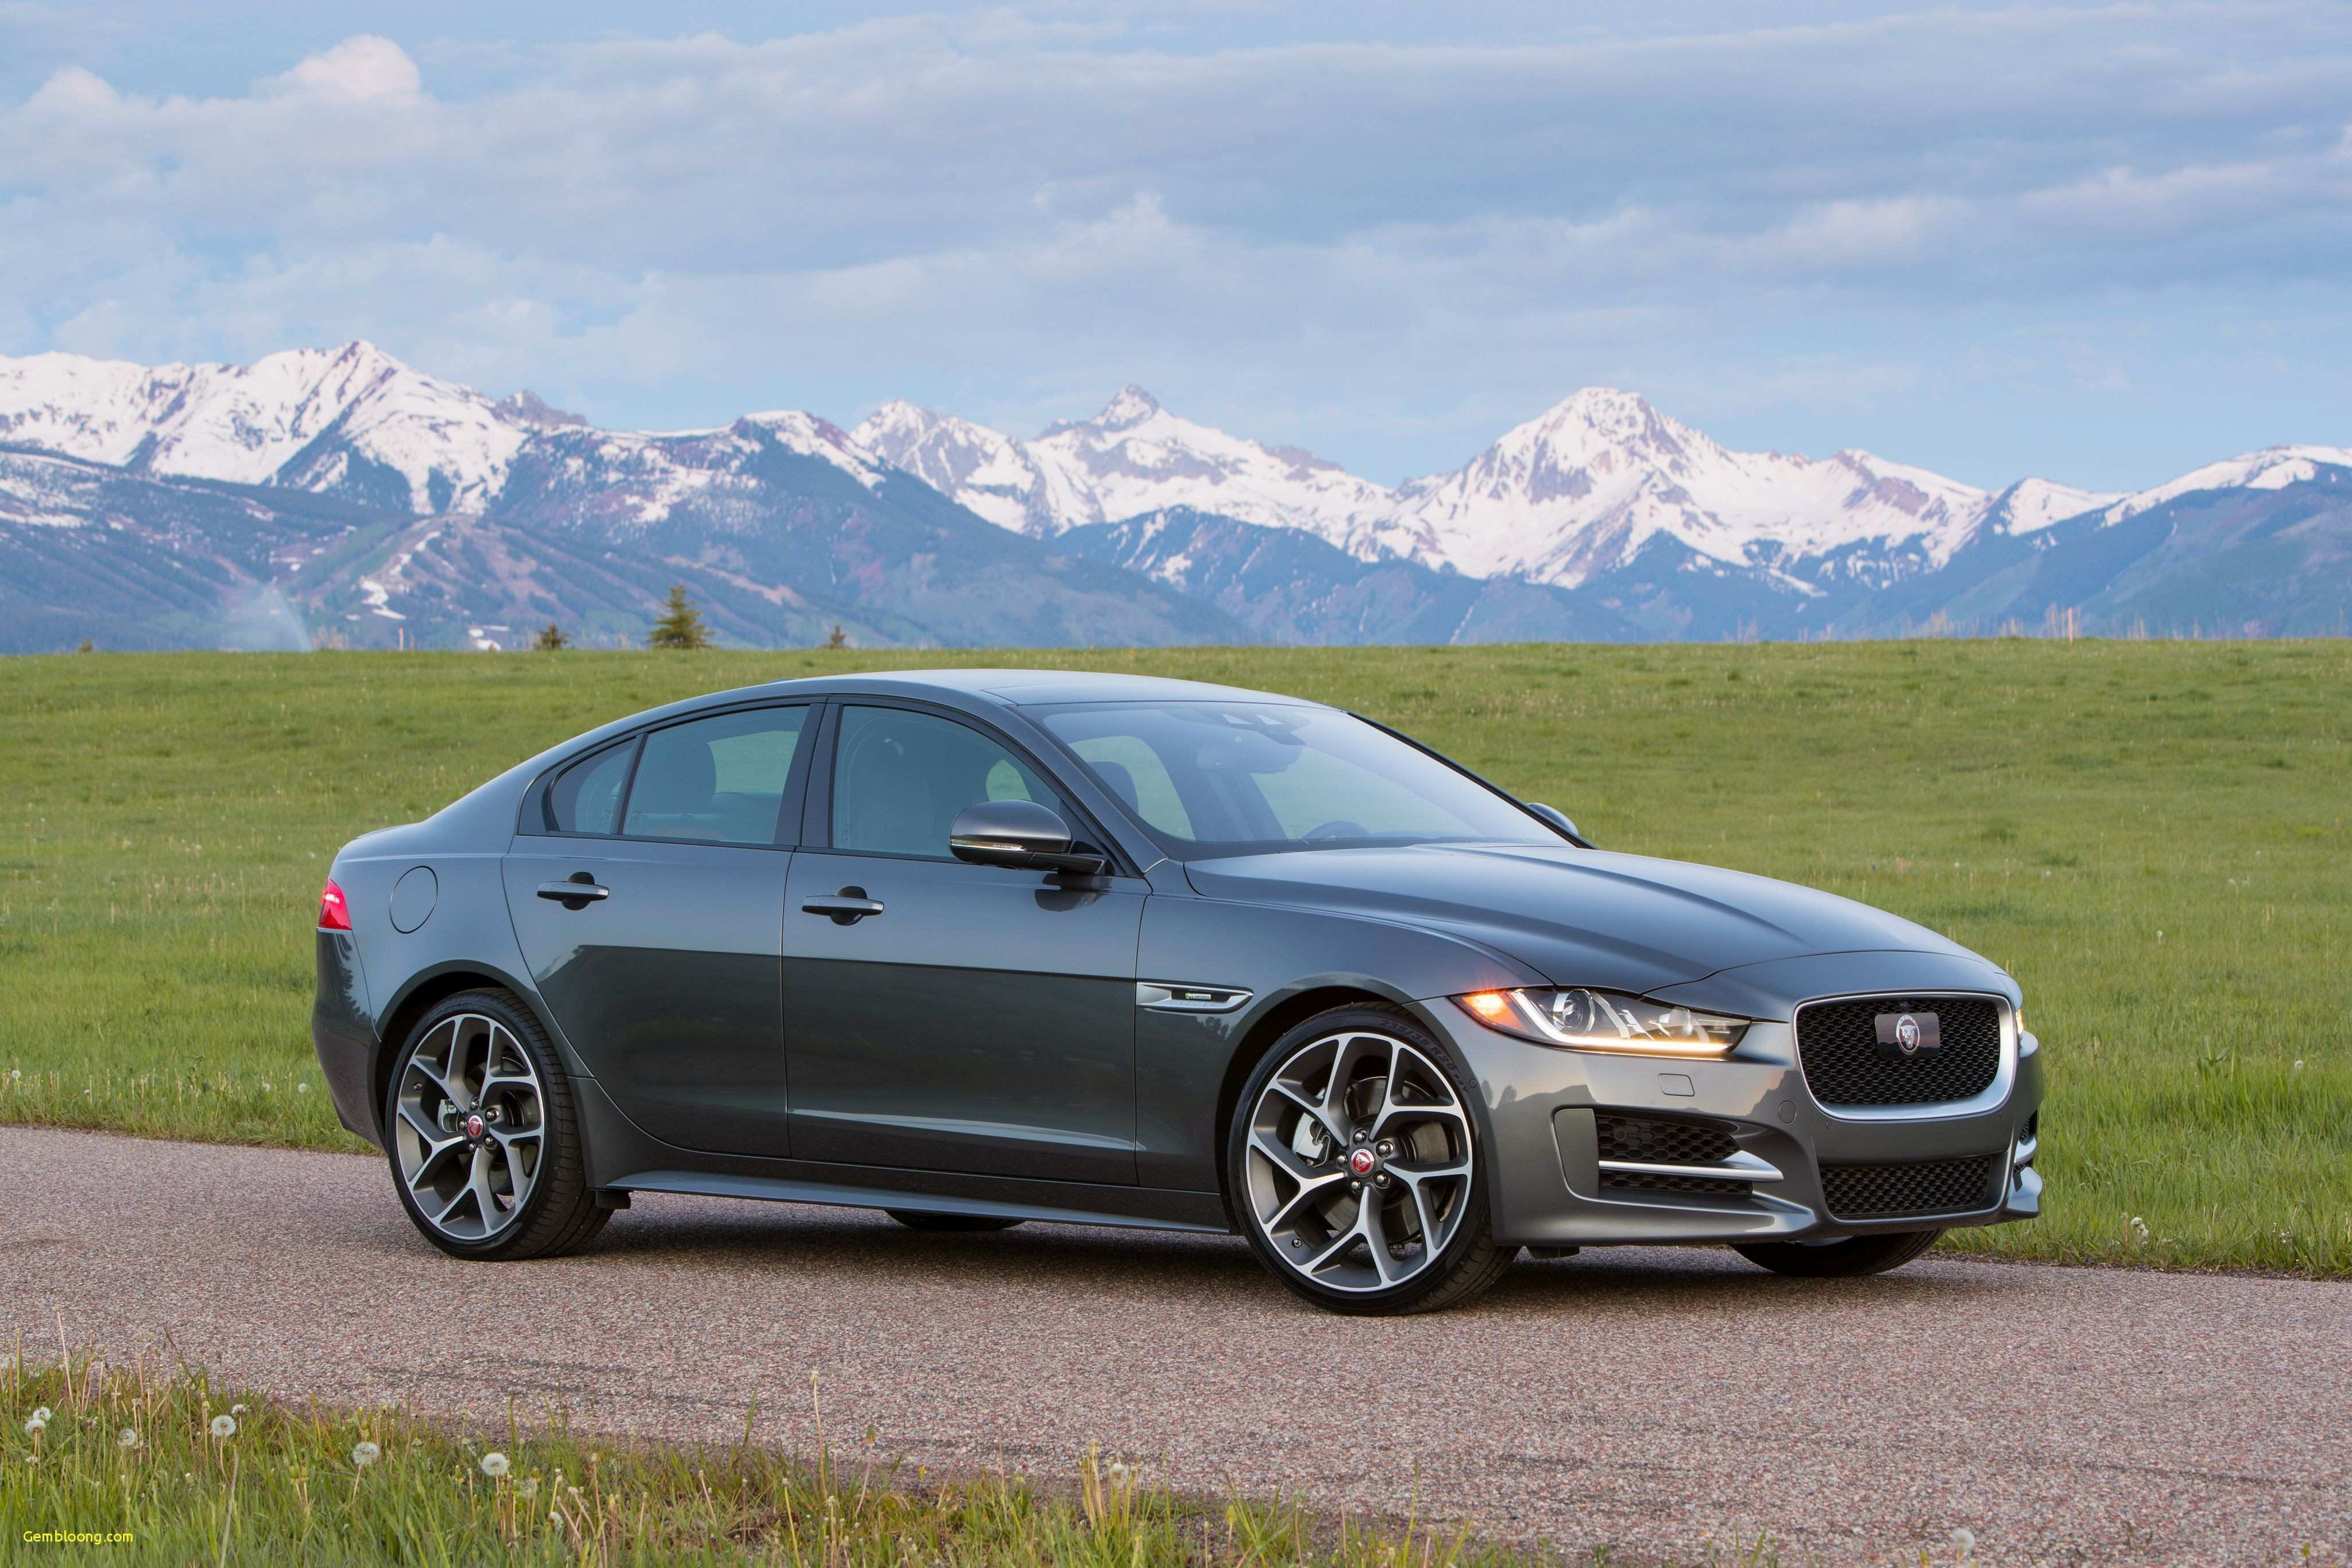 33 Best Review The Jaguar Xf 2019 Release Date Spesification Exterior for The Jaguar Xf 2019 Release Date Spesification